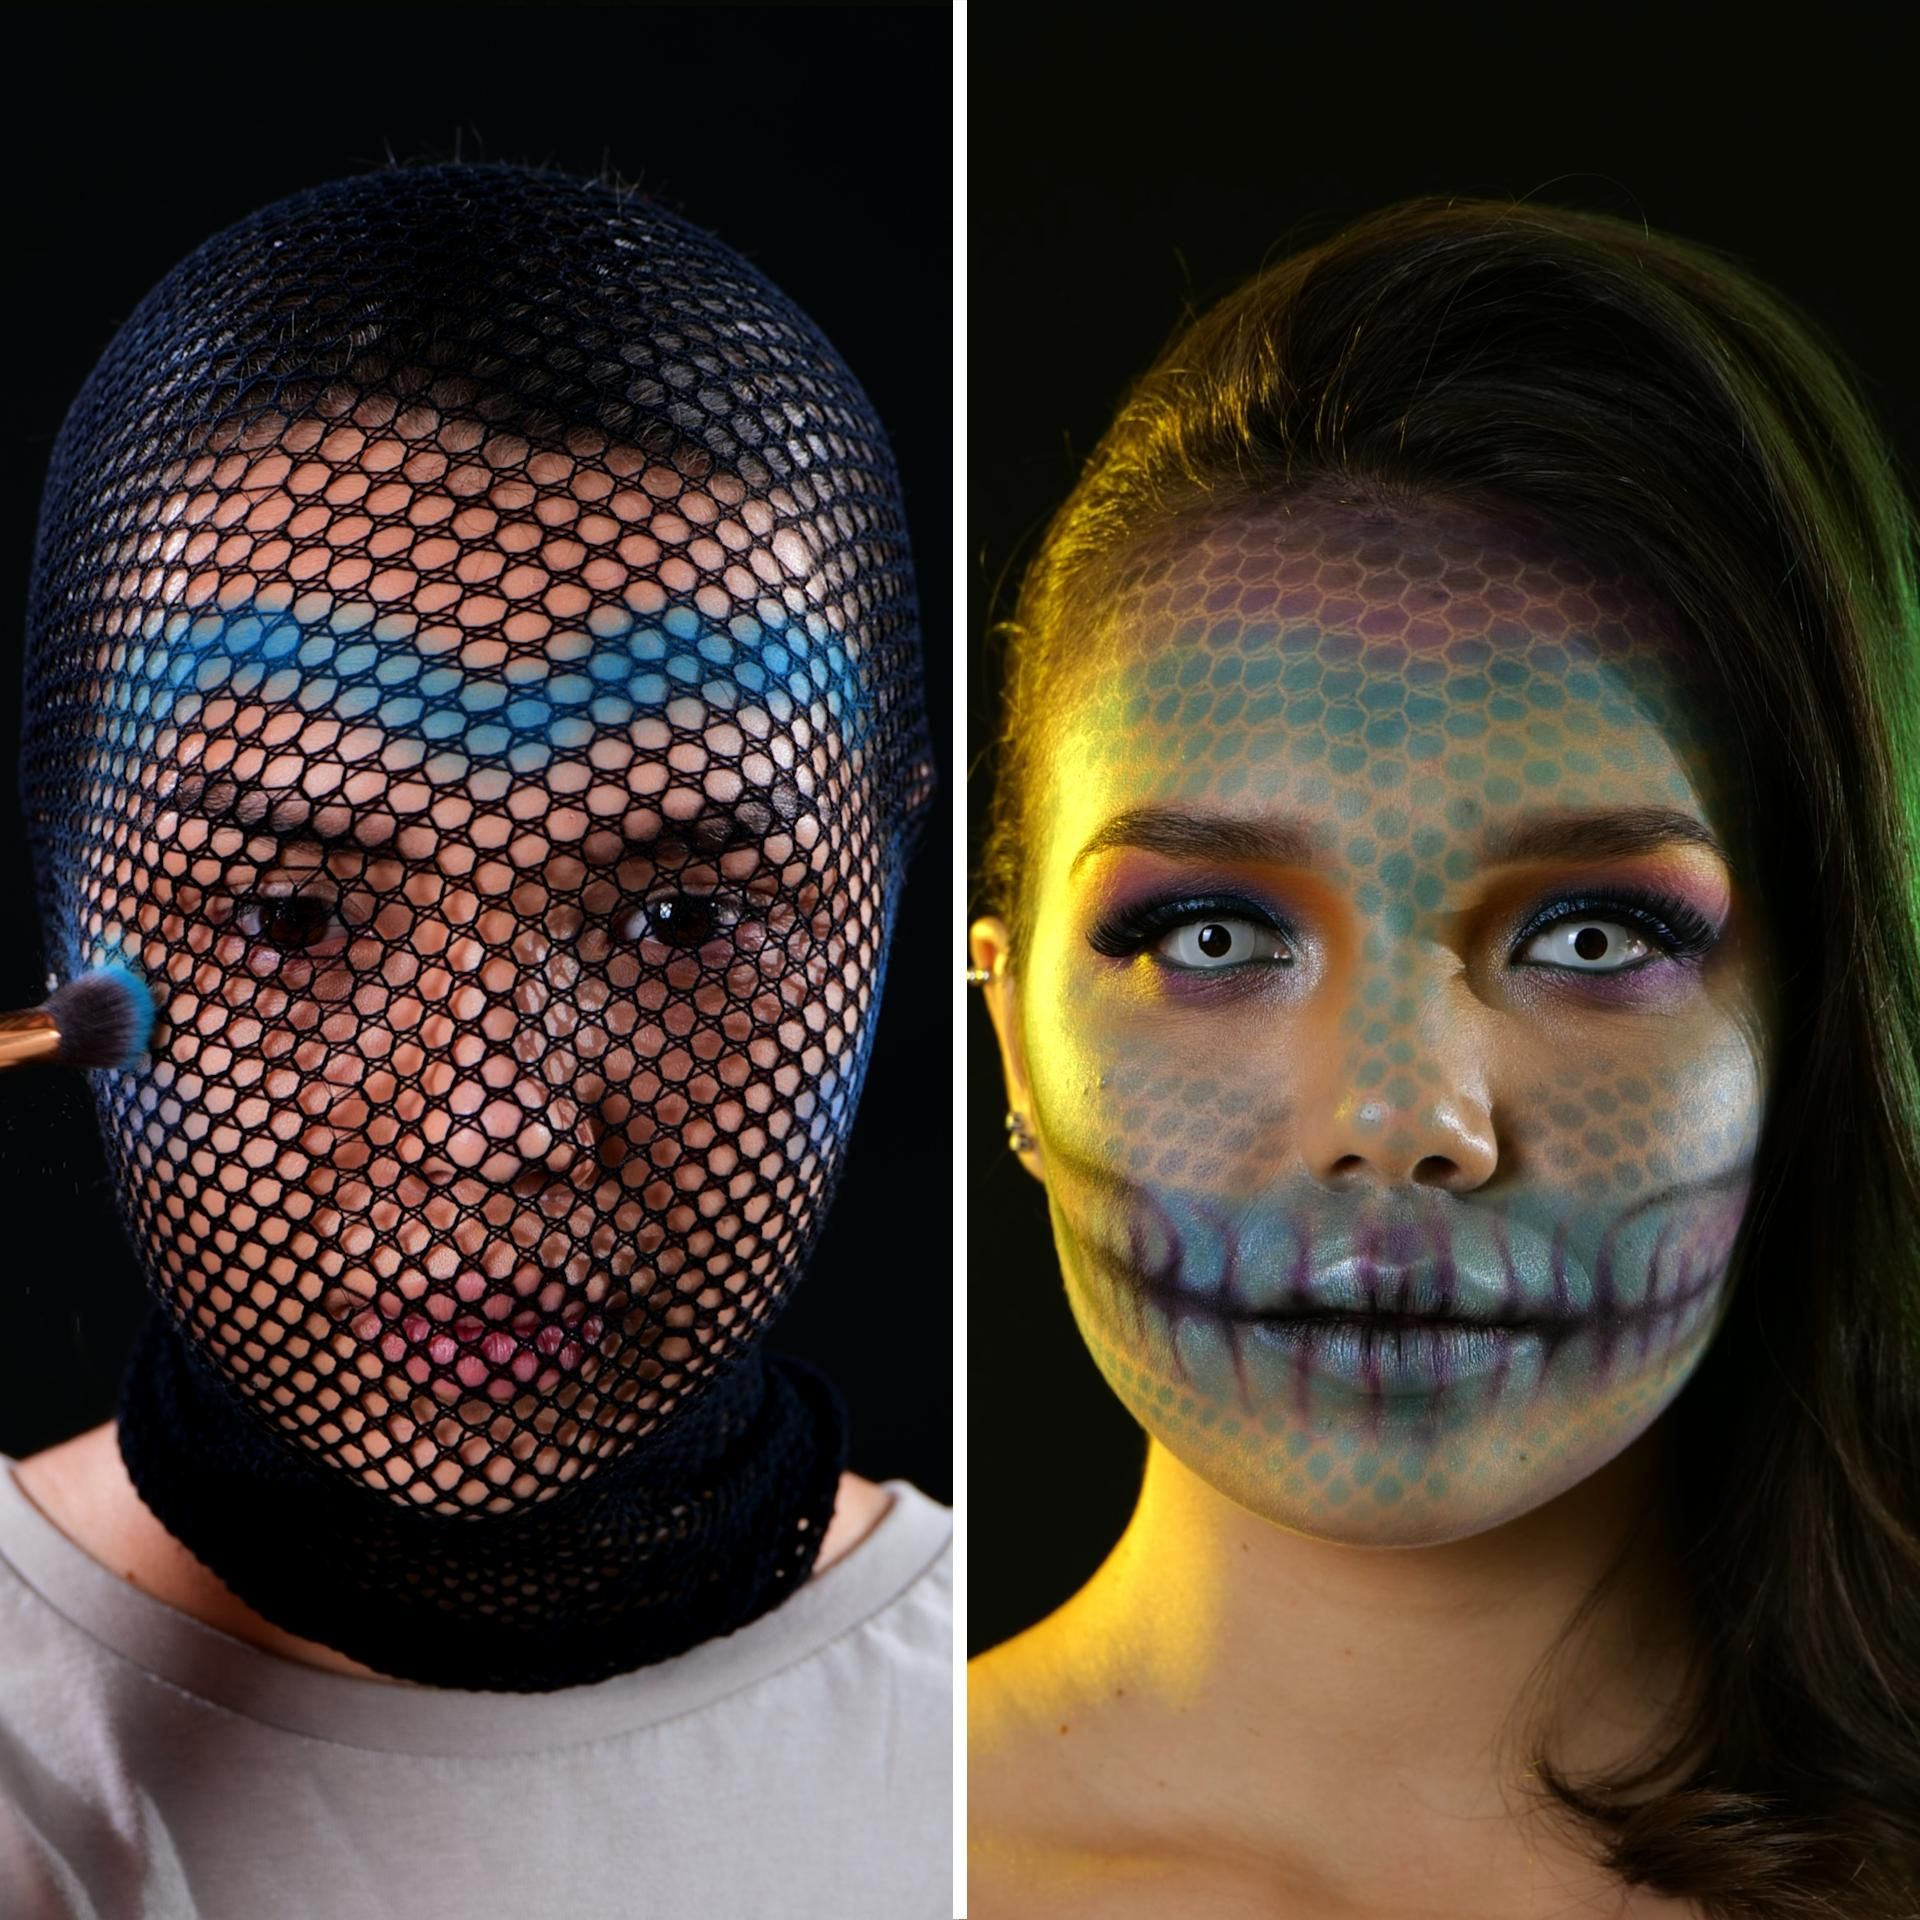 Creepy makeup ideas for special occasions